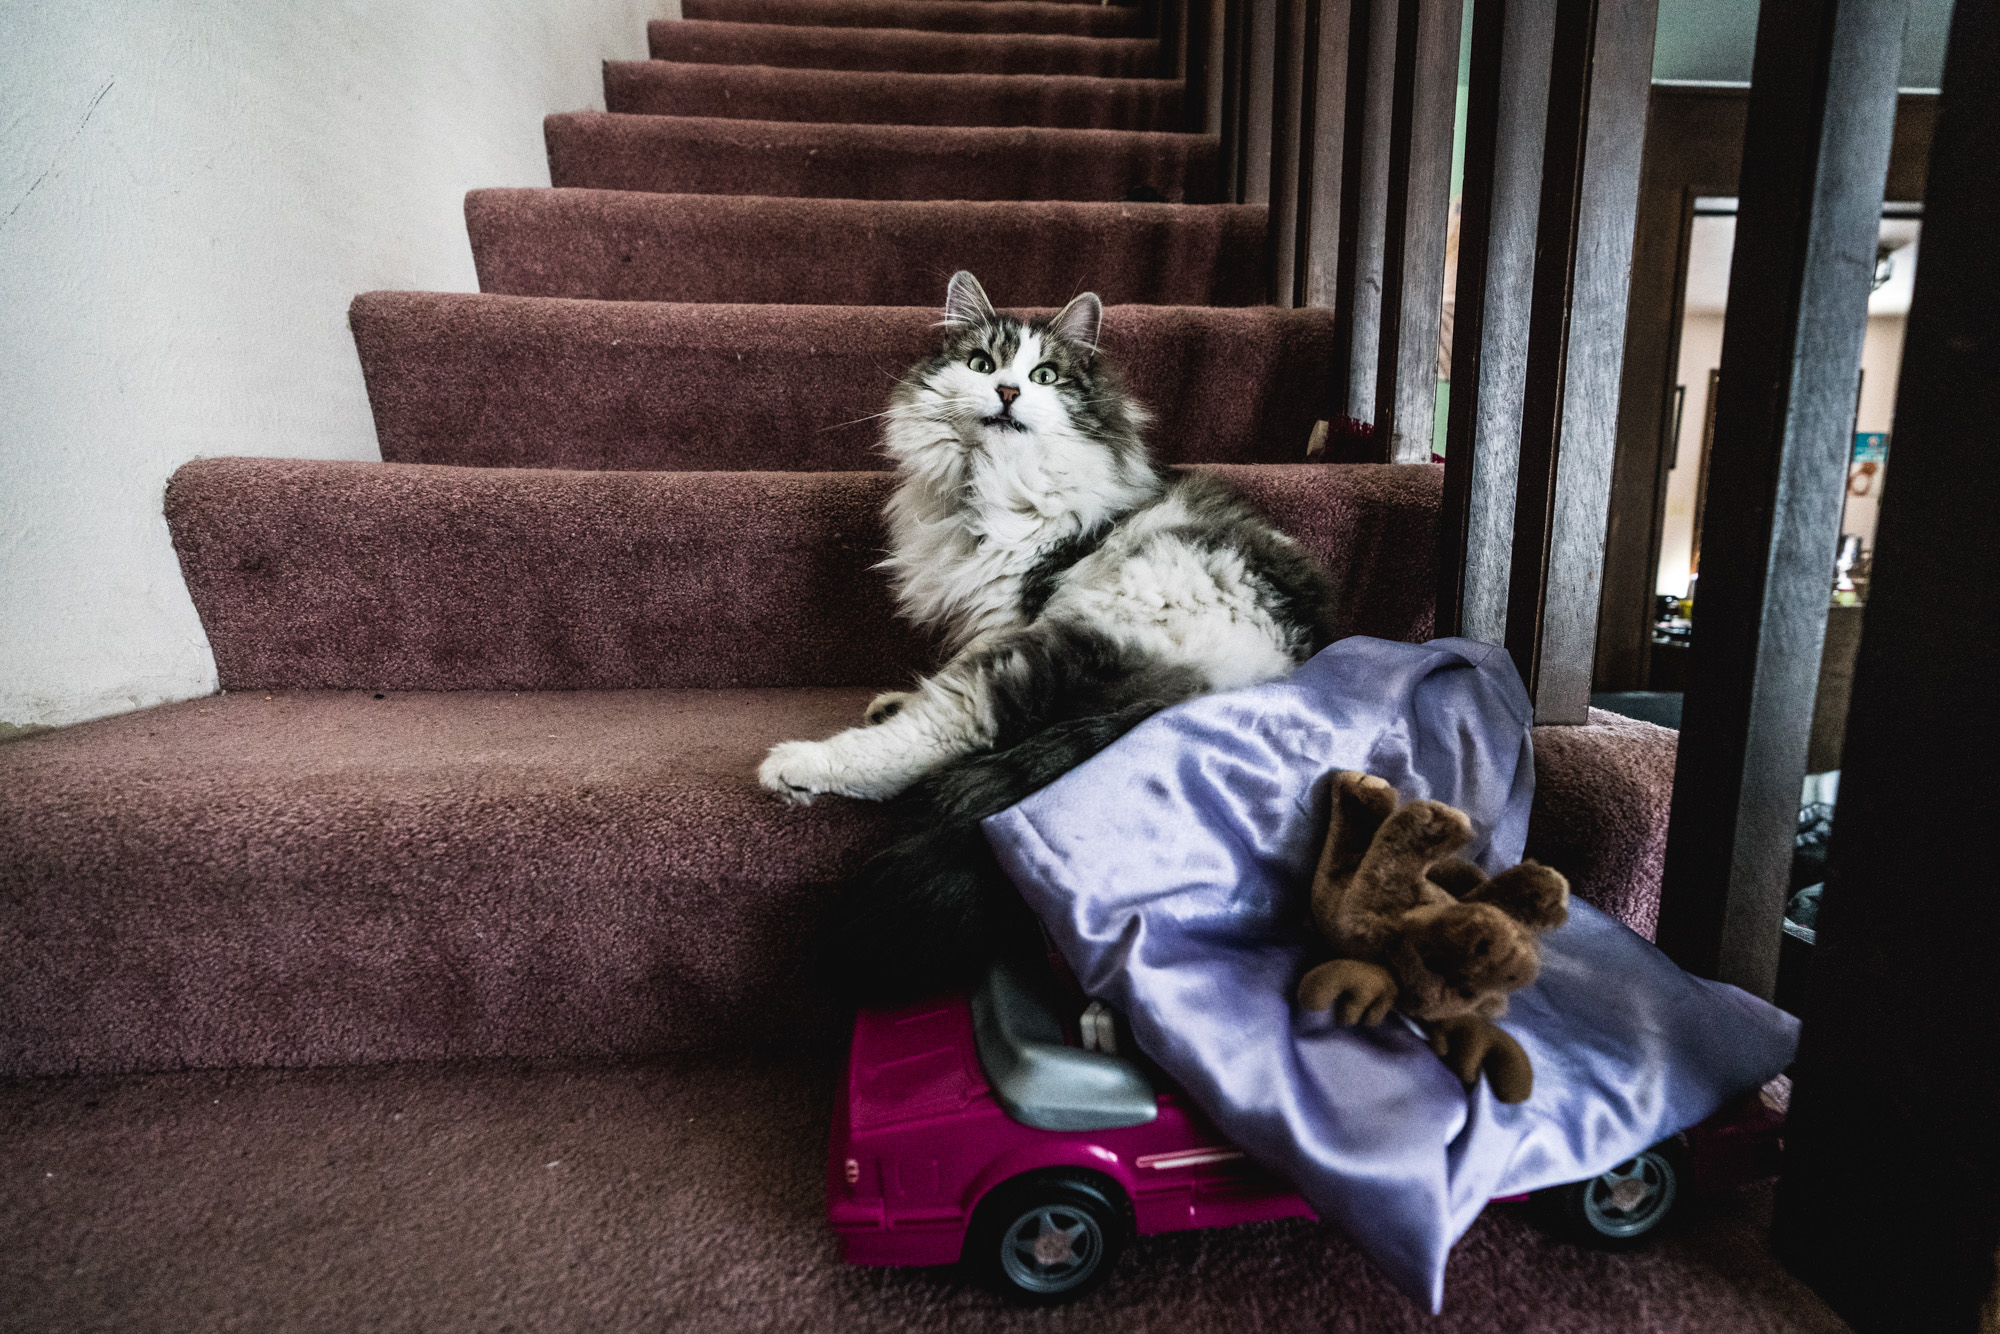 A big fluffy cat on the steps of a home looks at the camera